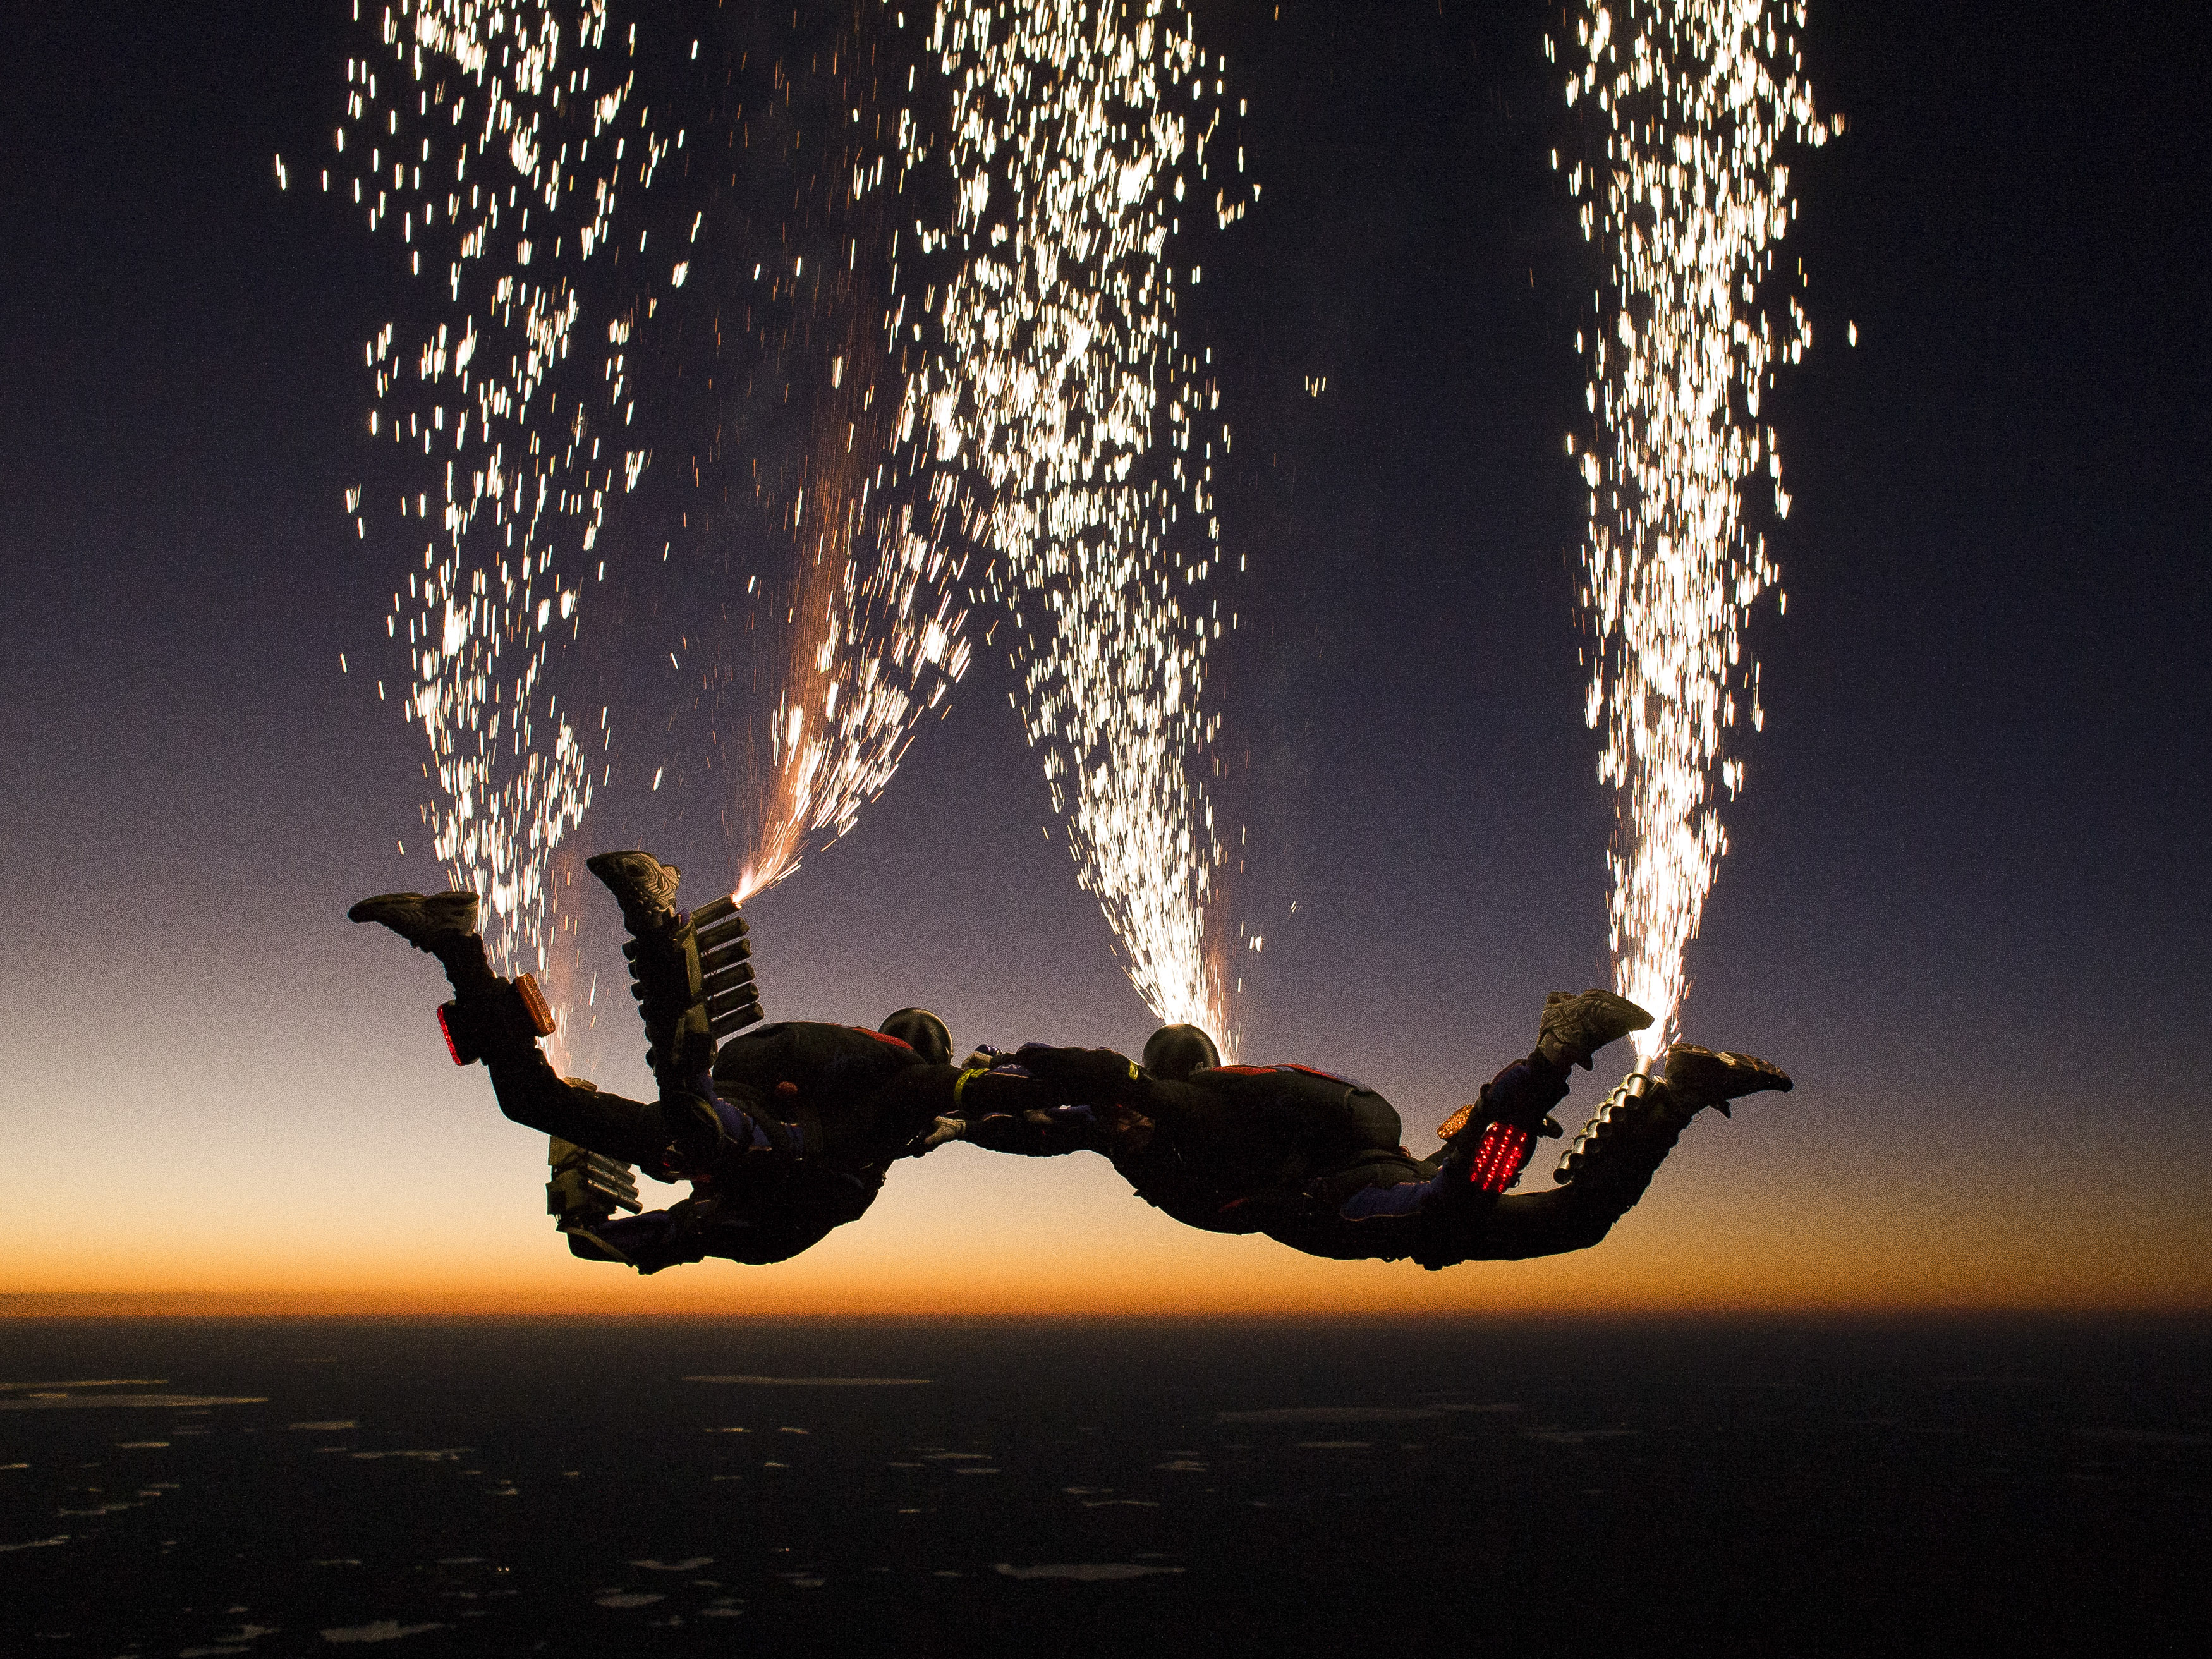 The Fastrax skydiving team set off fireworks as they jump out of the plane.